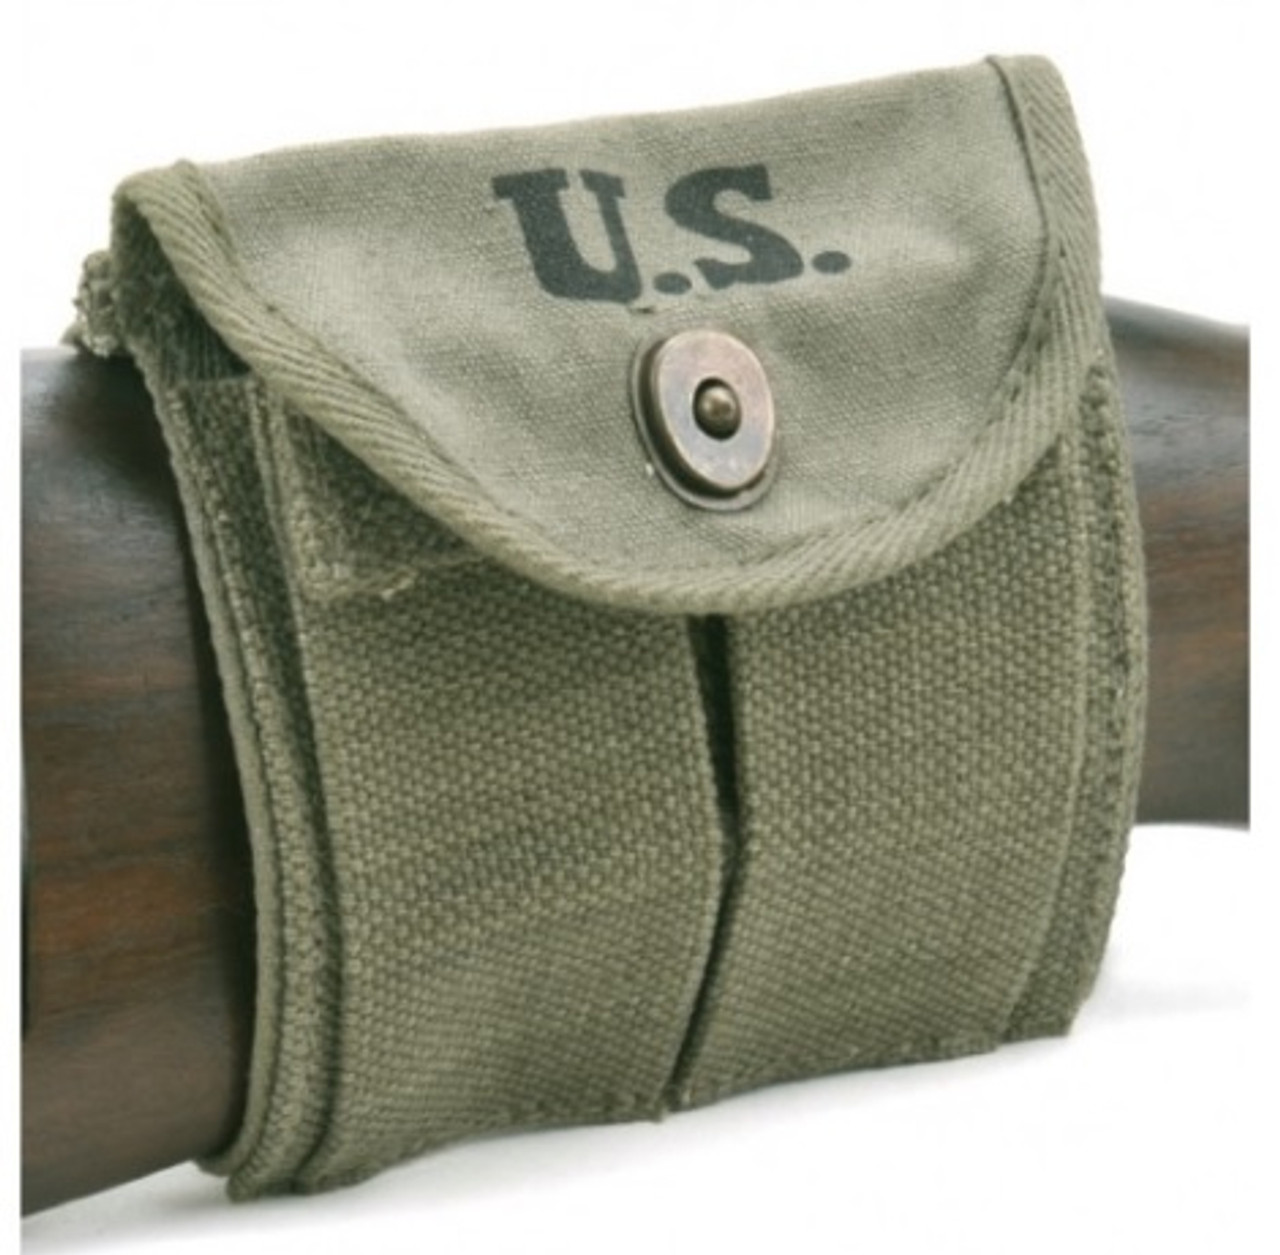 OD USGI WW2 DATED .30 M1 CARBINE SLING, OILER, & BUTTSTOCK POUCH Marked JT&L® 1944